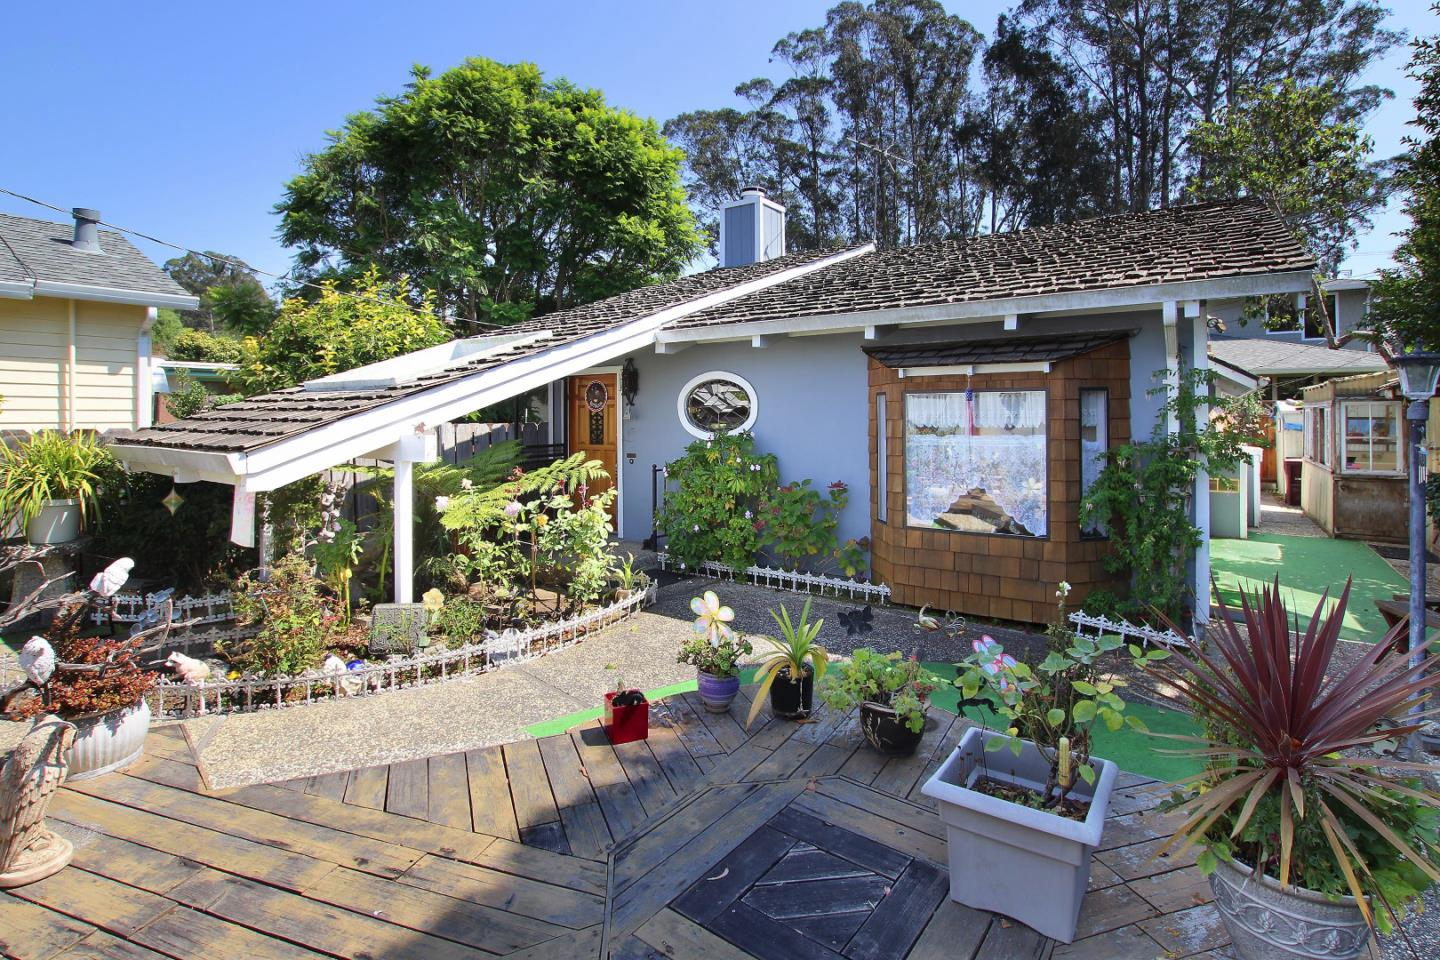 Opportunity to be in  a great Capitola Location! Adjacent to Depot Hill this bungalow has privacy and ample parking with a 3-car garage. Take a walk in your private rose garden courtyard to a darling house. Property is in original condition. Living Room has wood vaulted ceilings with a fireplace. 1 bedroom with cozy fireplace + bonus room.There is a green house on the property as well. You are just around the corner from walking to Capitola Village and beach, New Brighton State Beach, Gayles Bakery and Capitola Produce. Small park setting across the street.